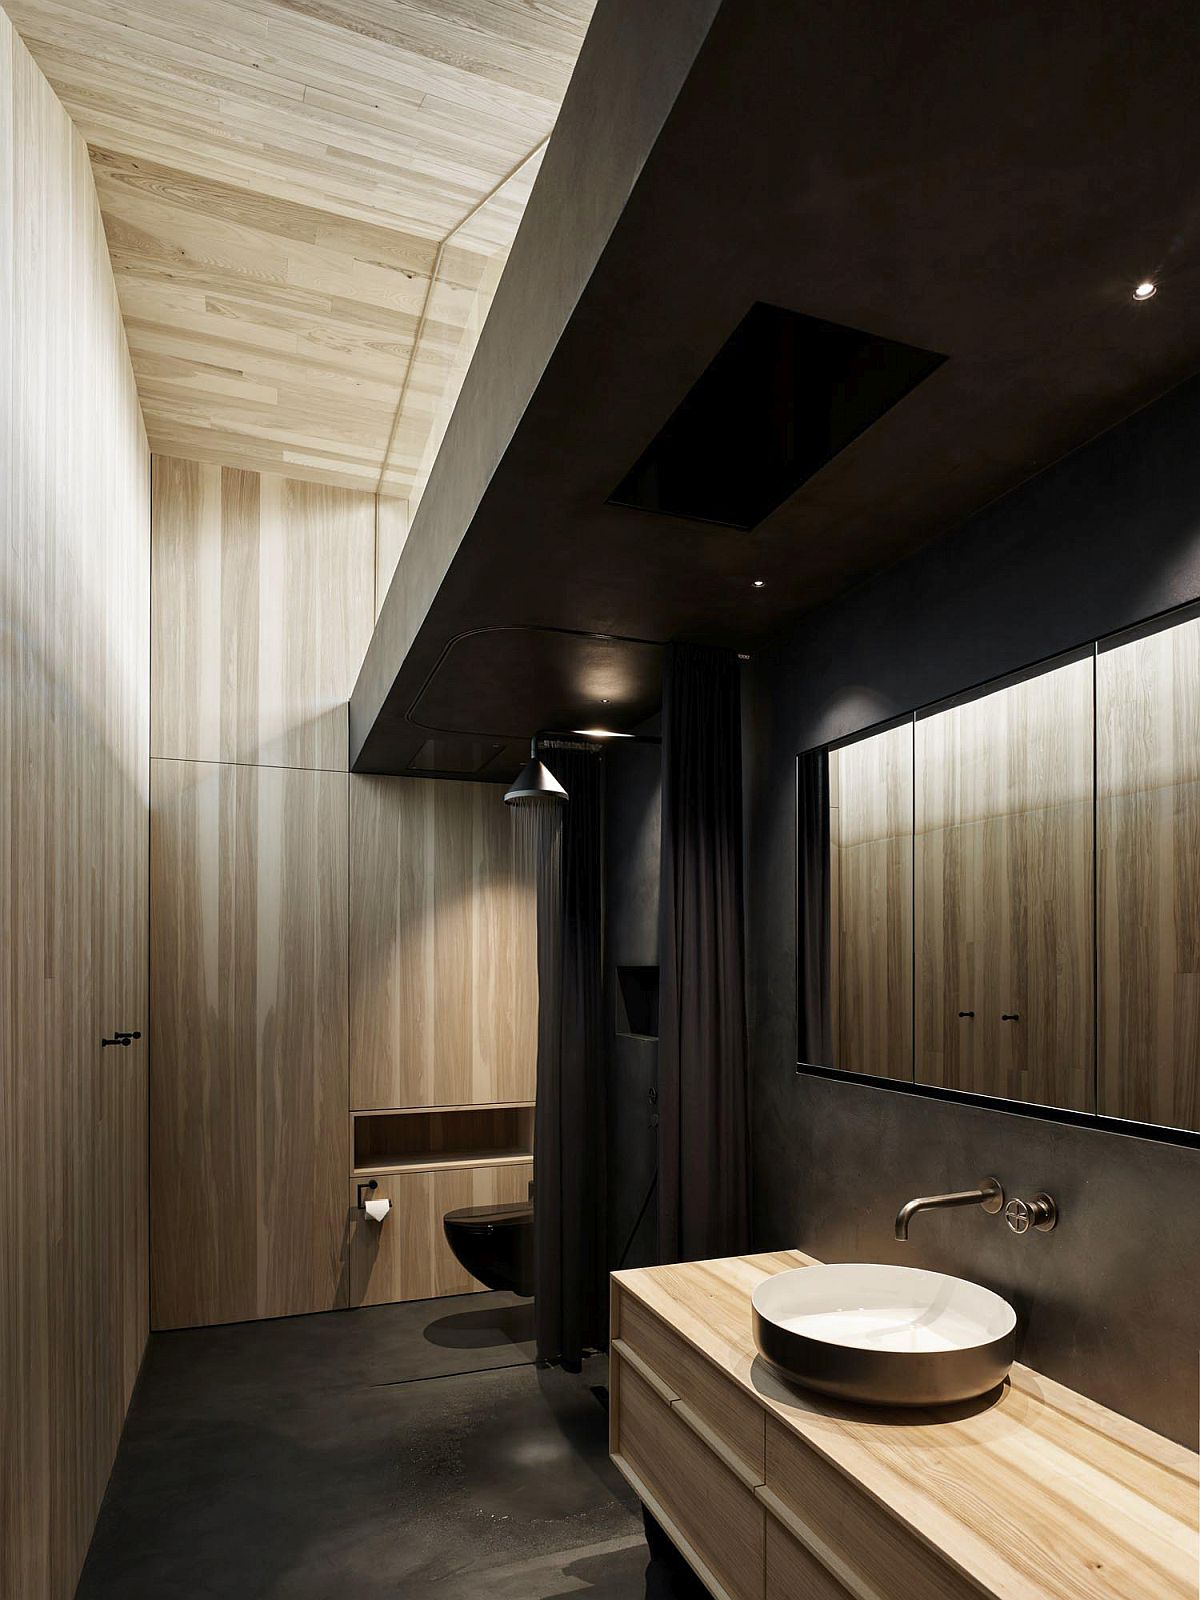 Bathroom of the house in wood and black moves away from the usual color palette